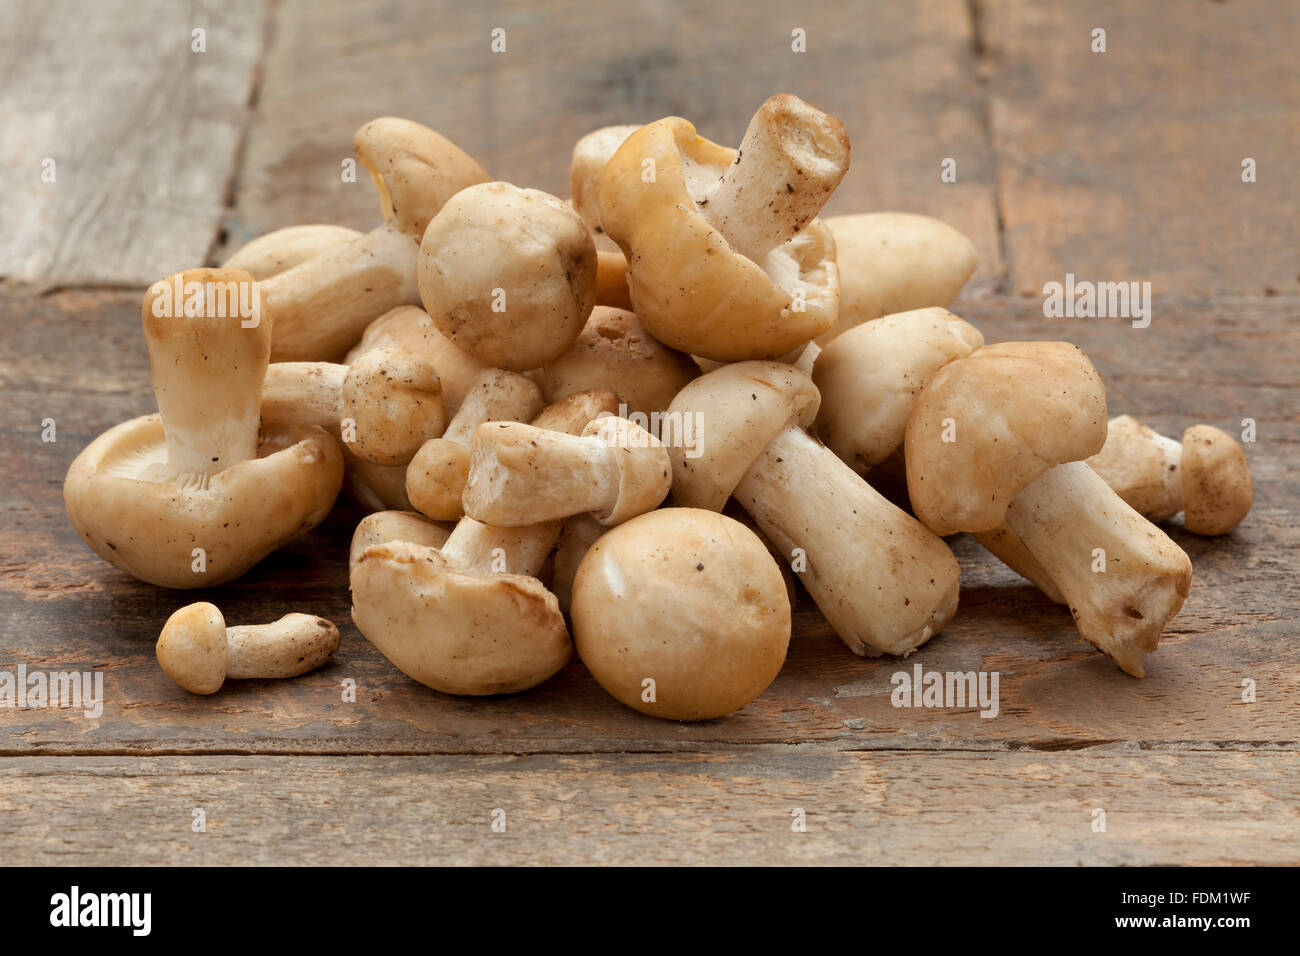 Heap of fresh St.George's mushrooms on a table - Stock Image